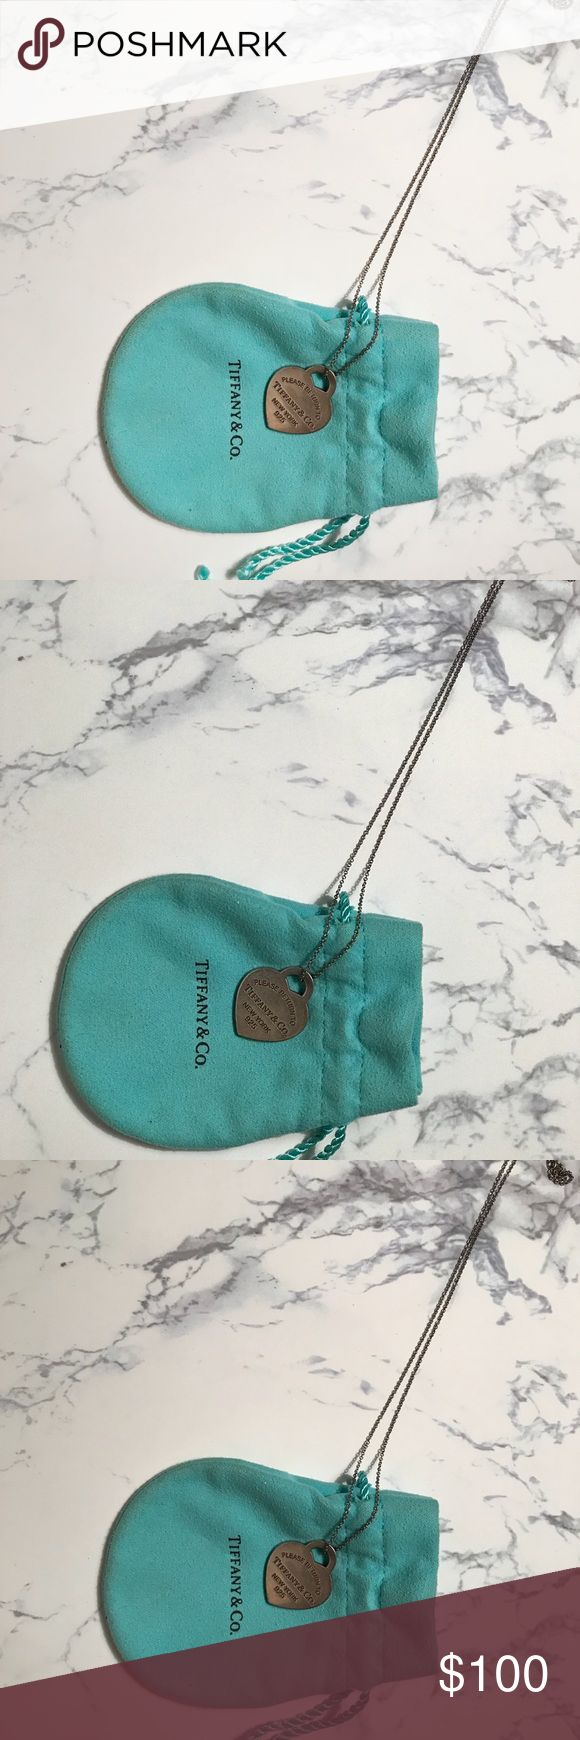 Tiffany Heart Necklace I'm good condition. Little wear. Tiffany & Co. Jewelry Necklaces